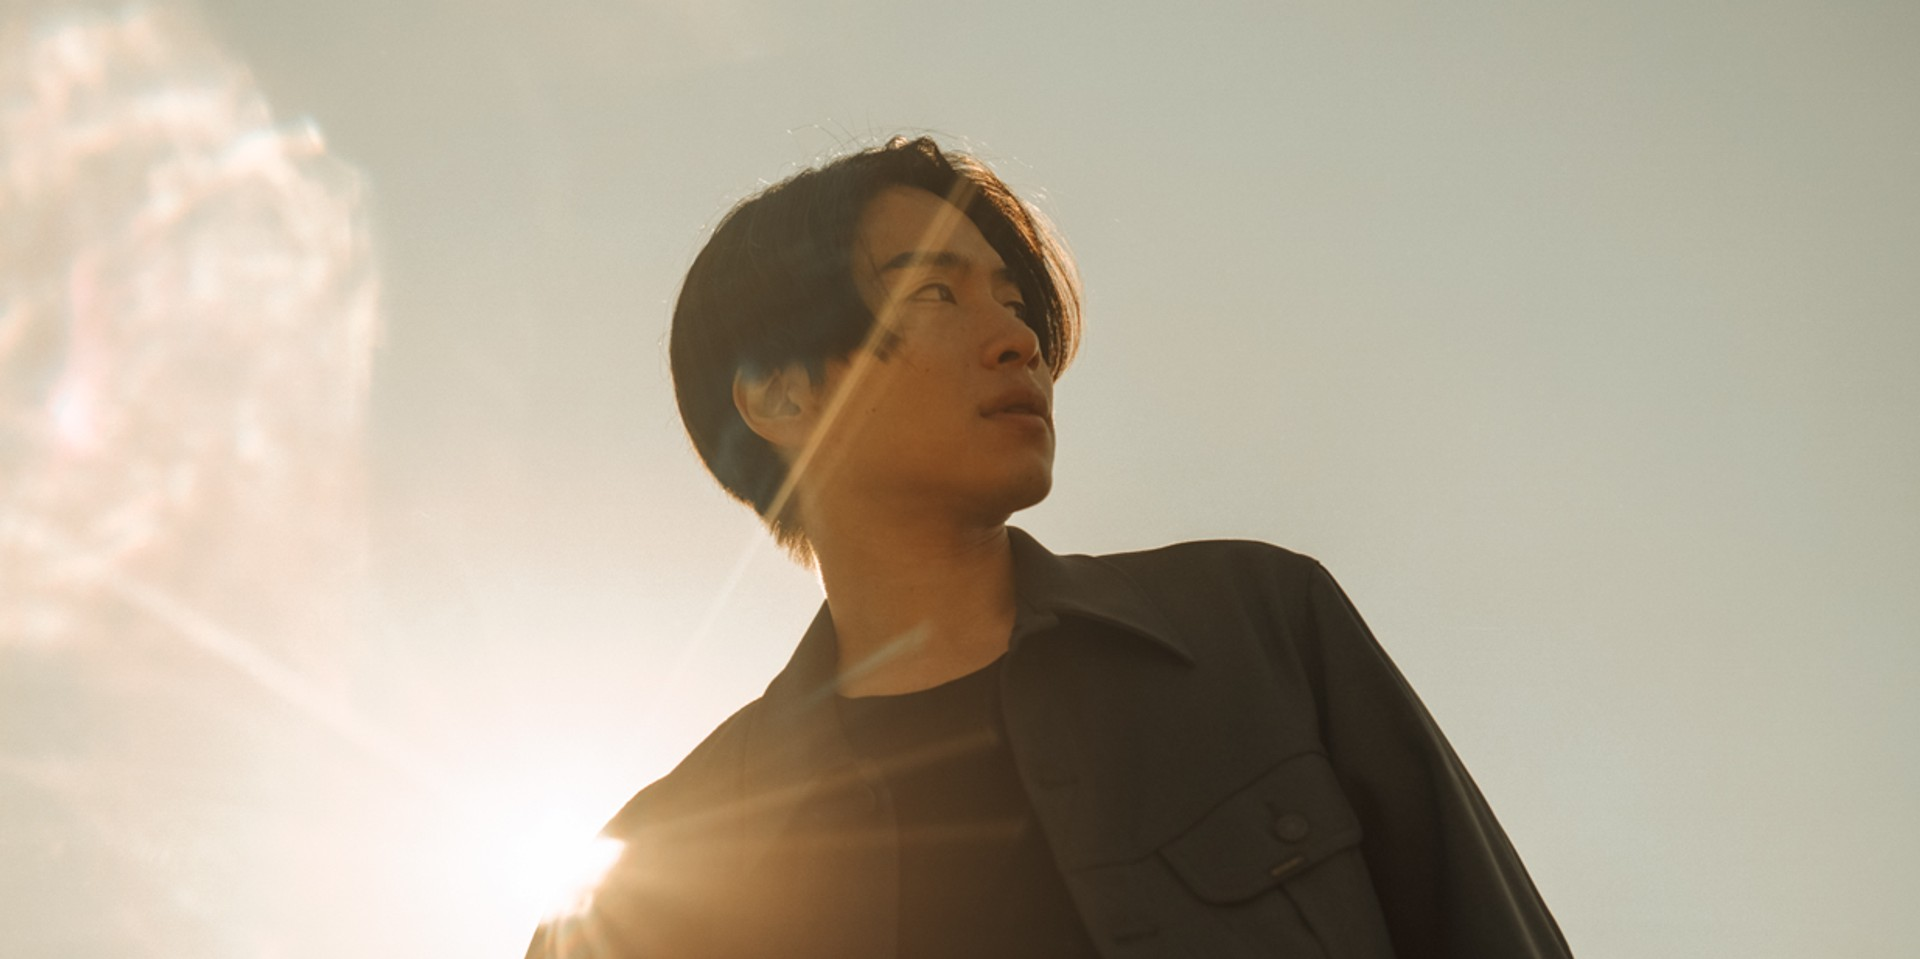 Asia Spotlight: Japanese singer-songwriter SIRUP talks mental health and being a catalyst for change